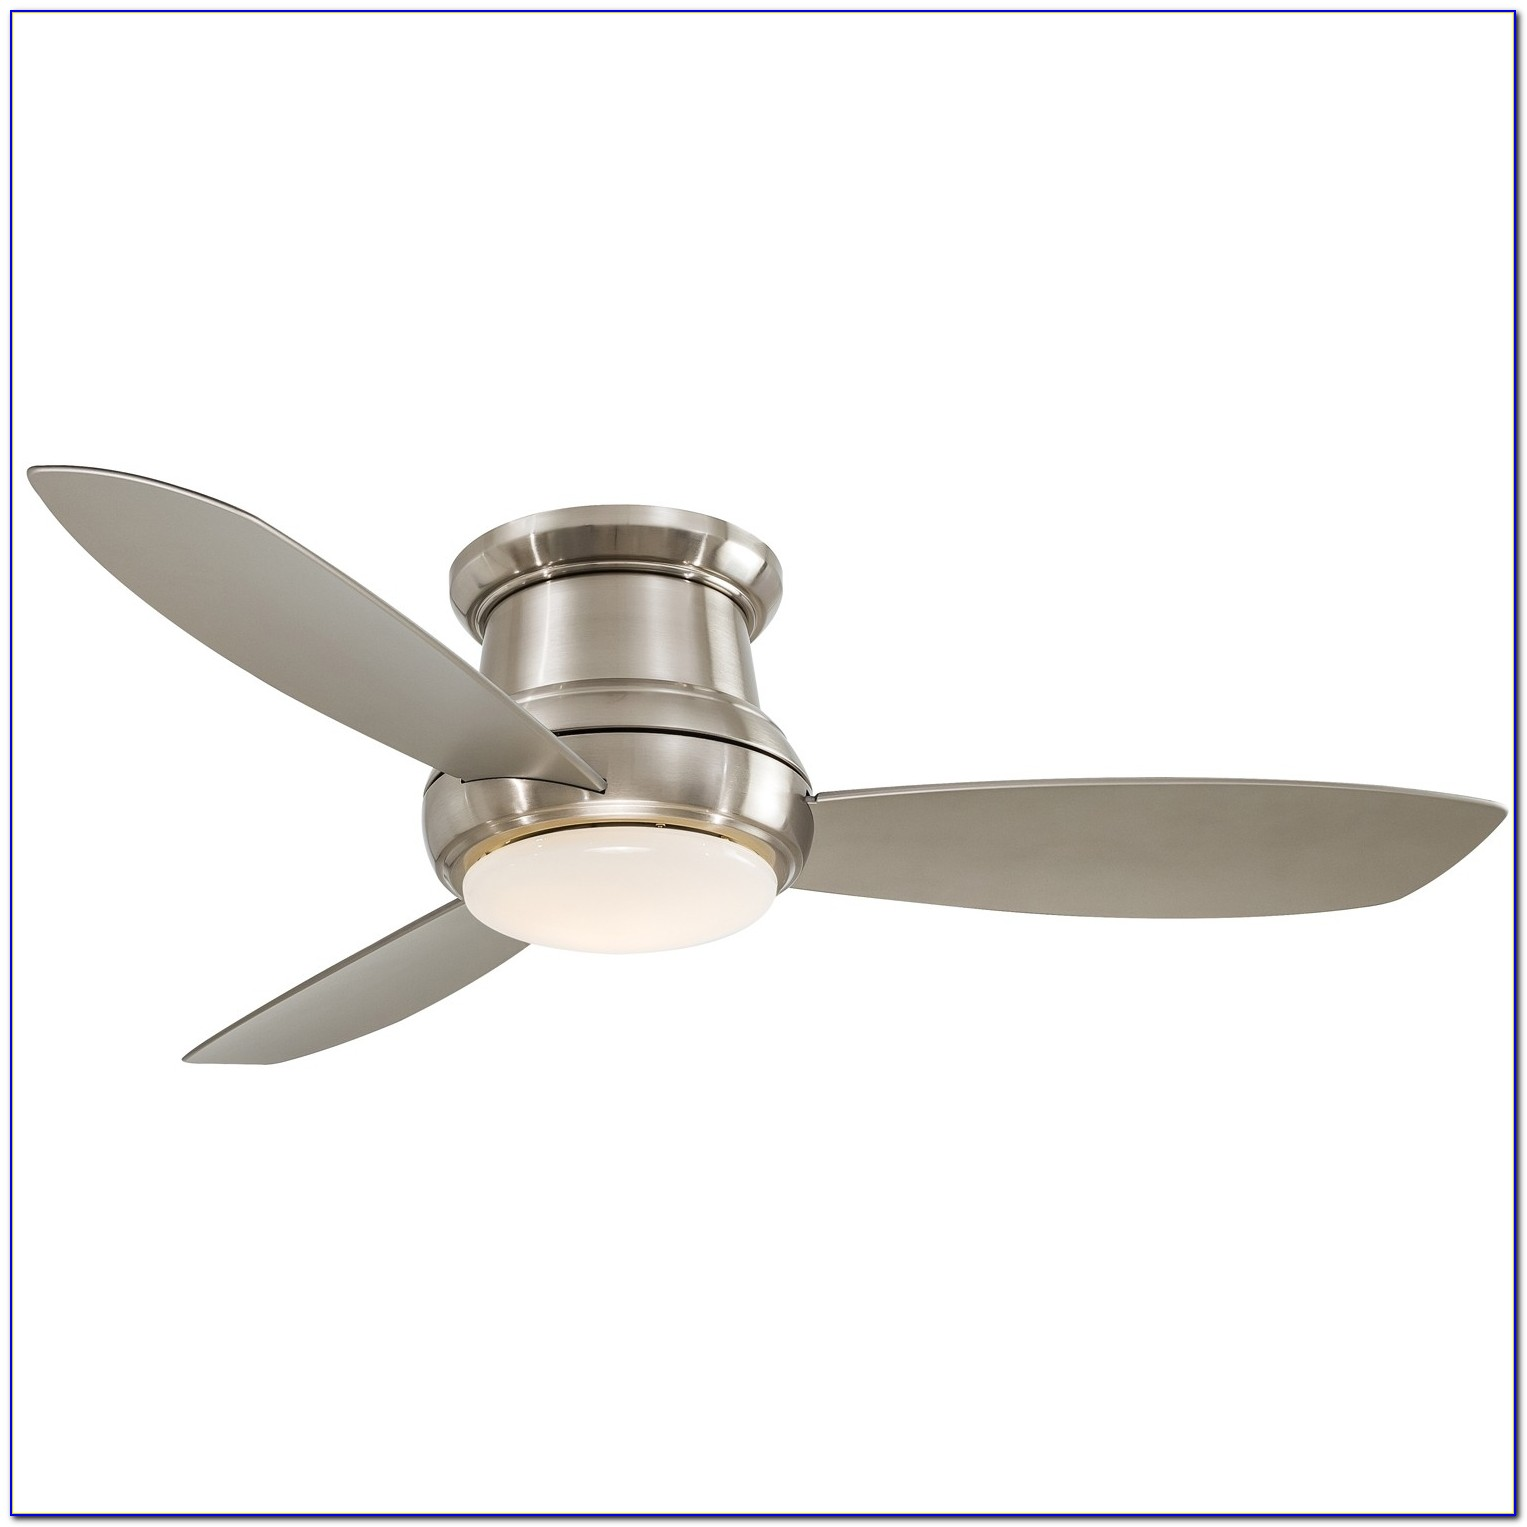 Hunter Concept 2 Ceiling Fan